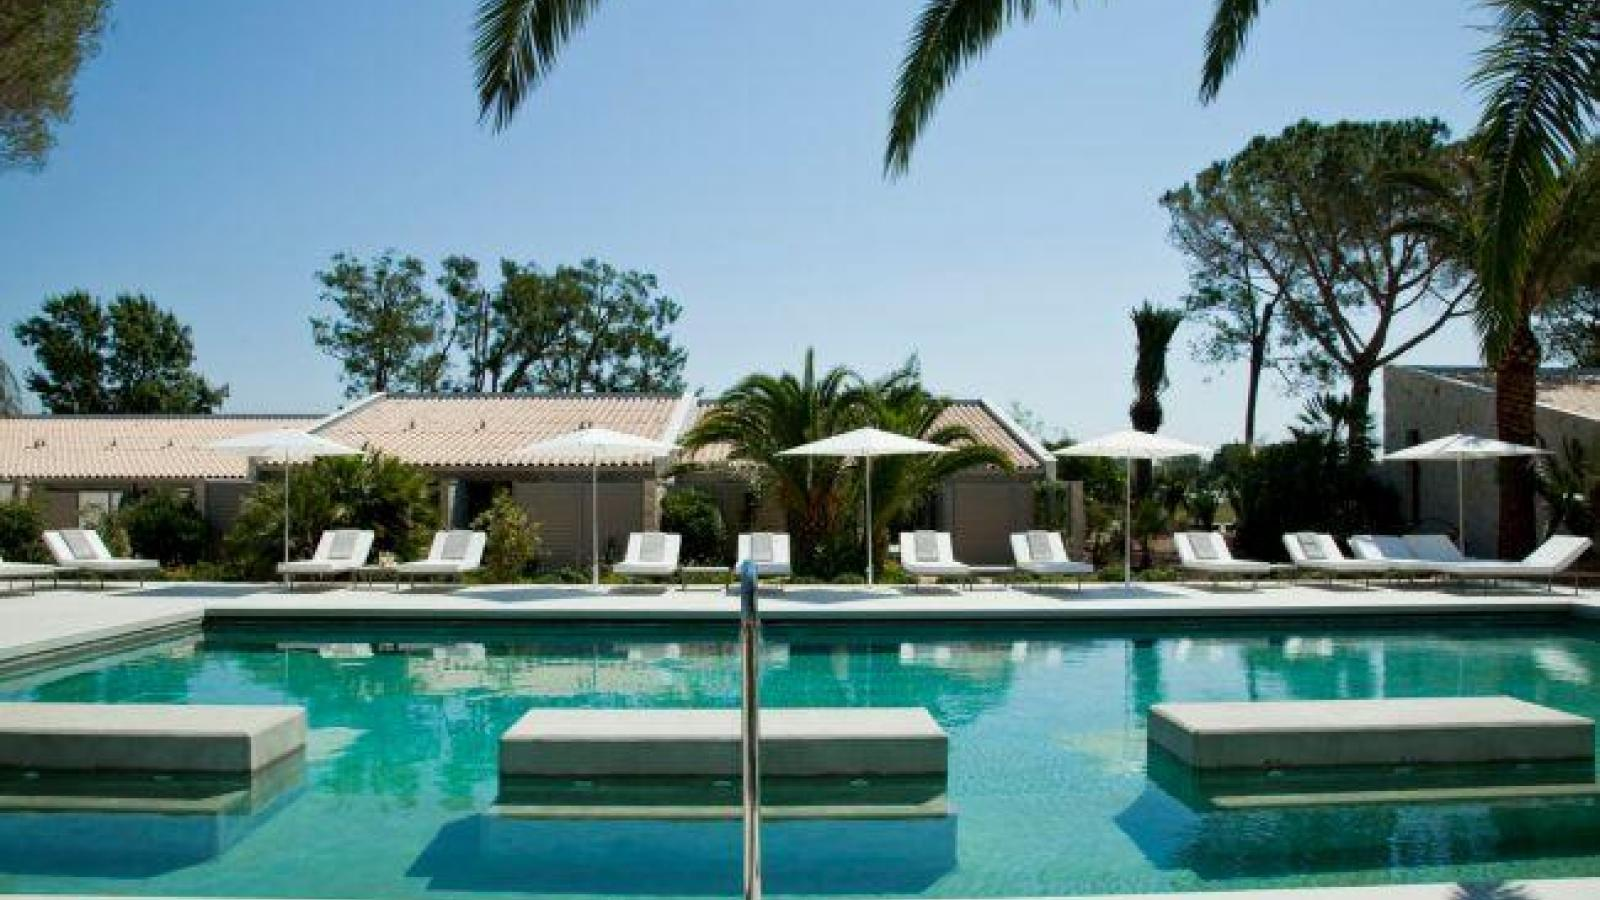 Luxurious hotel St Tropez to host events with elegance